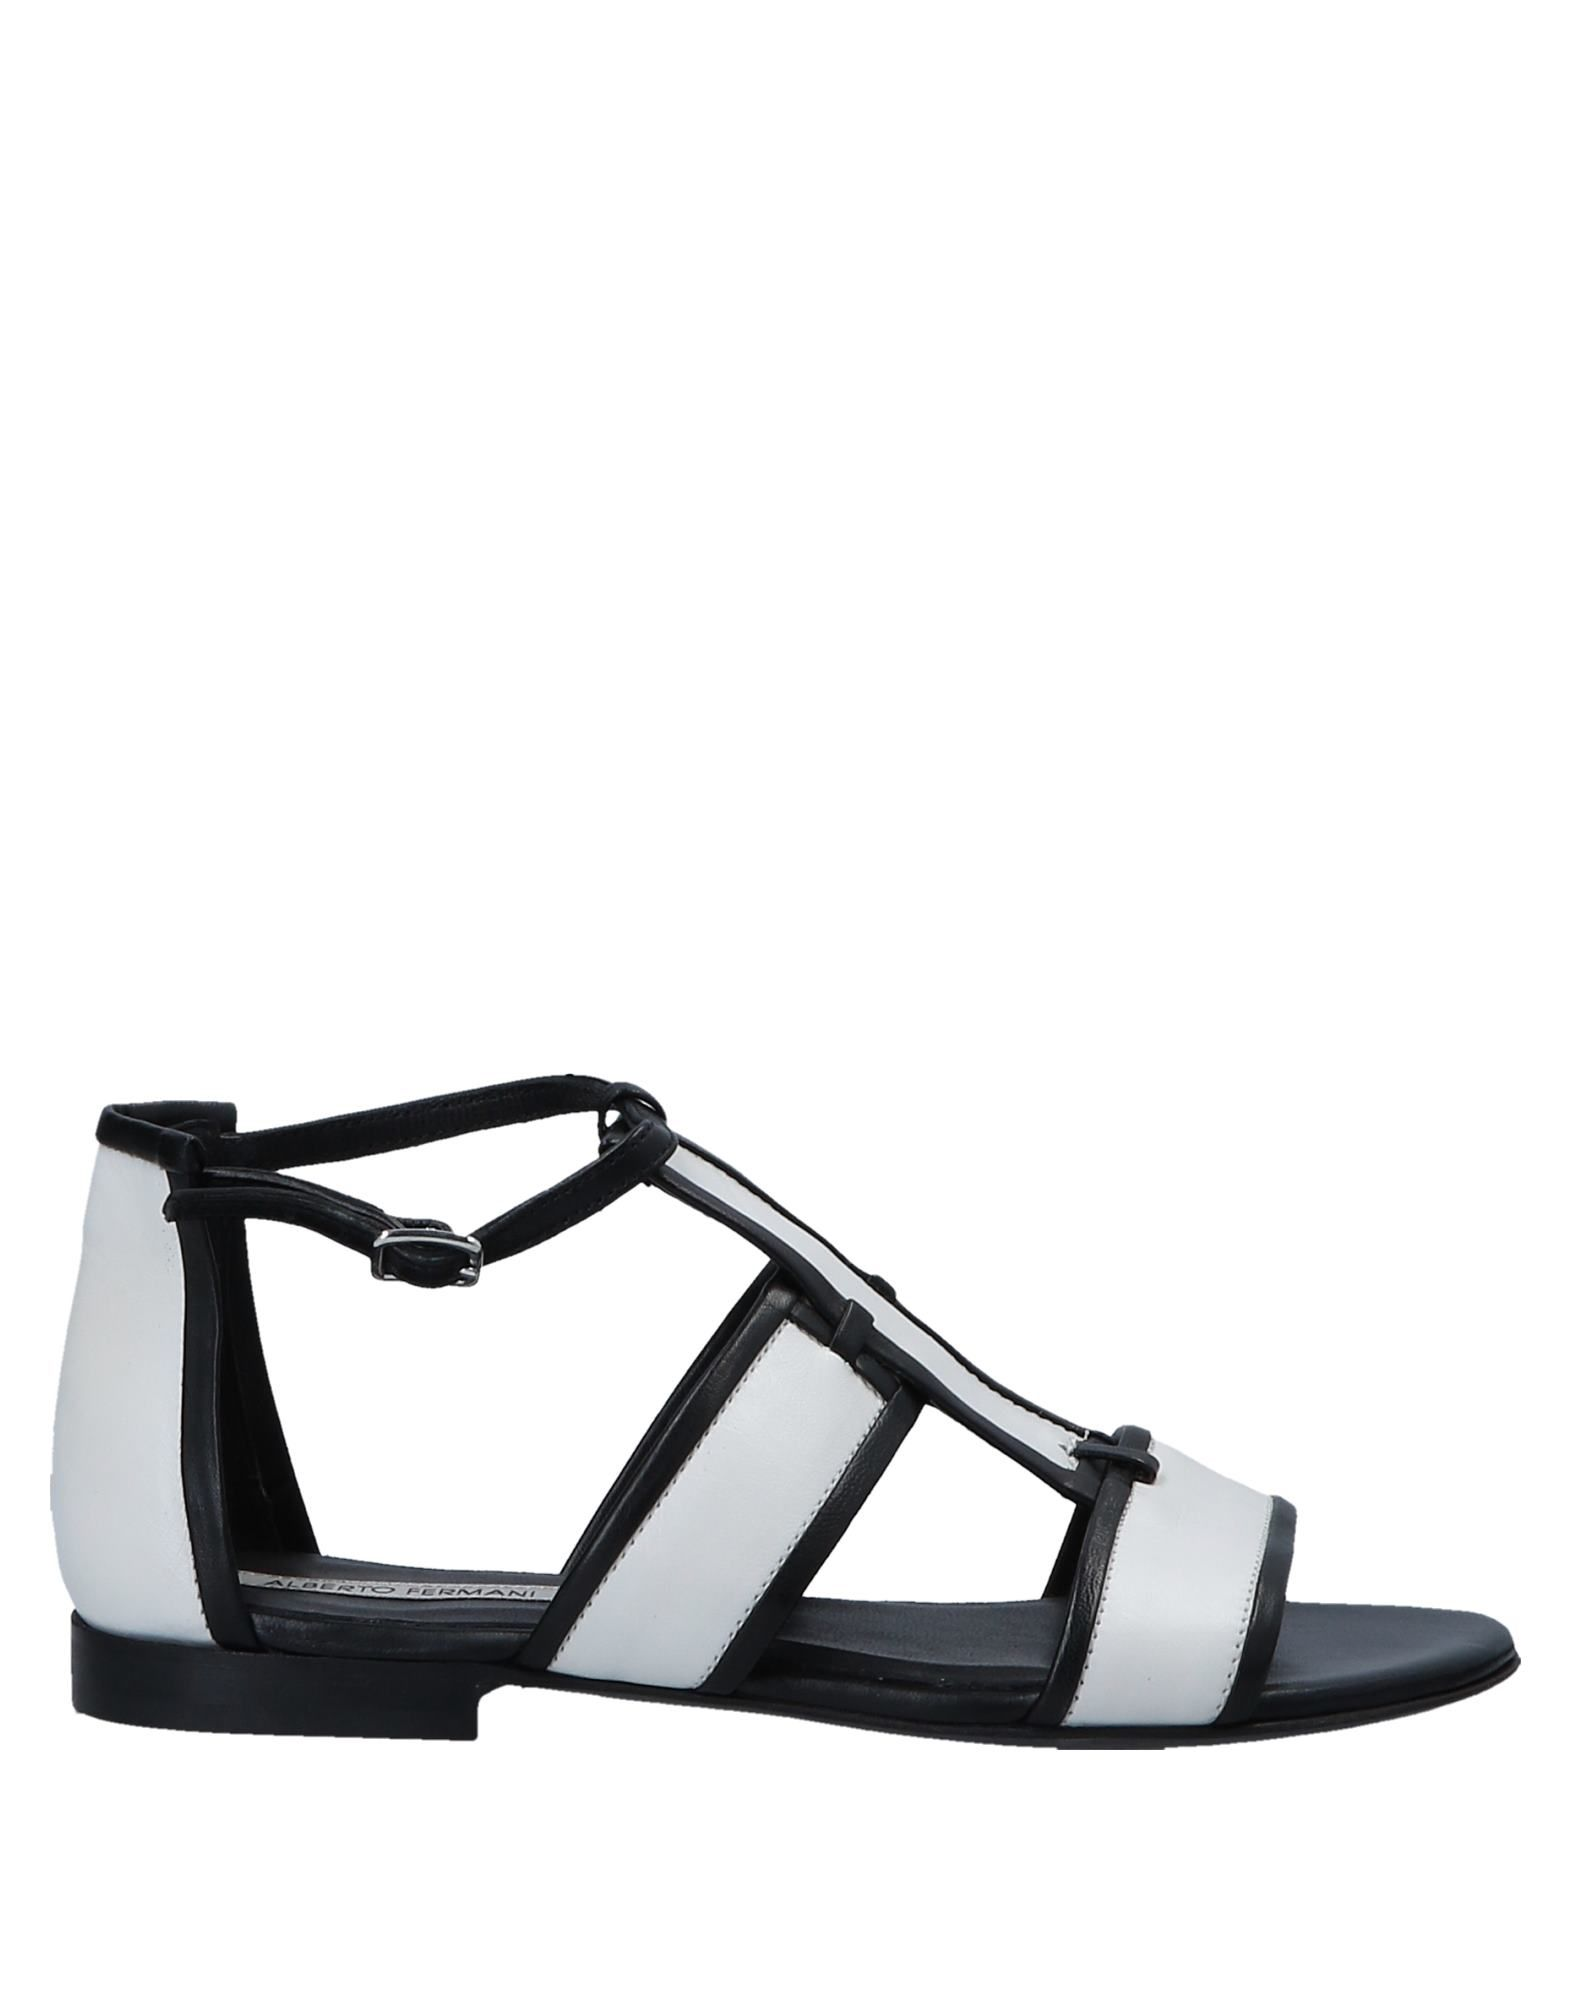 Alberto Fermani Sandals - Women Alberto Fermani United Sandals online on  United Fermani Kingdom - 11557361SK 2d90c4